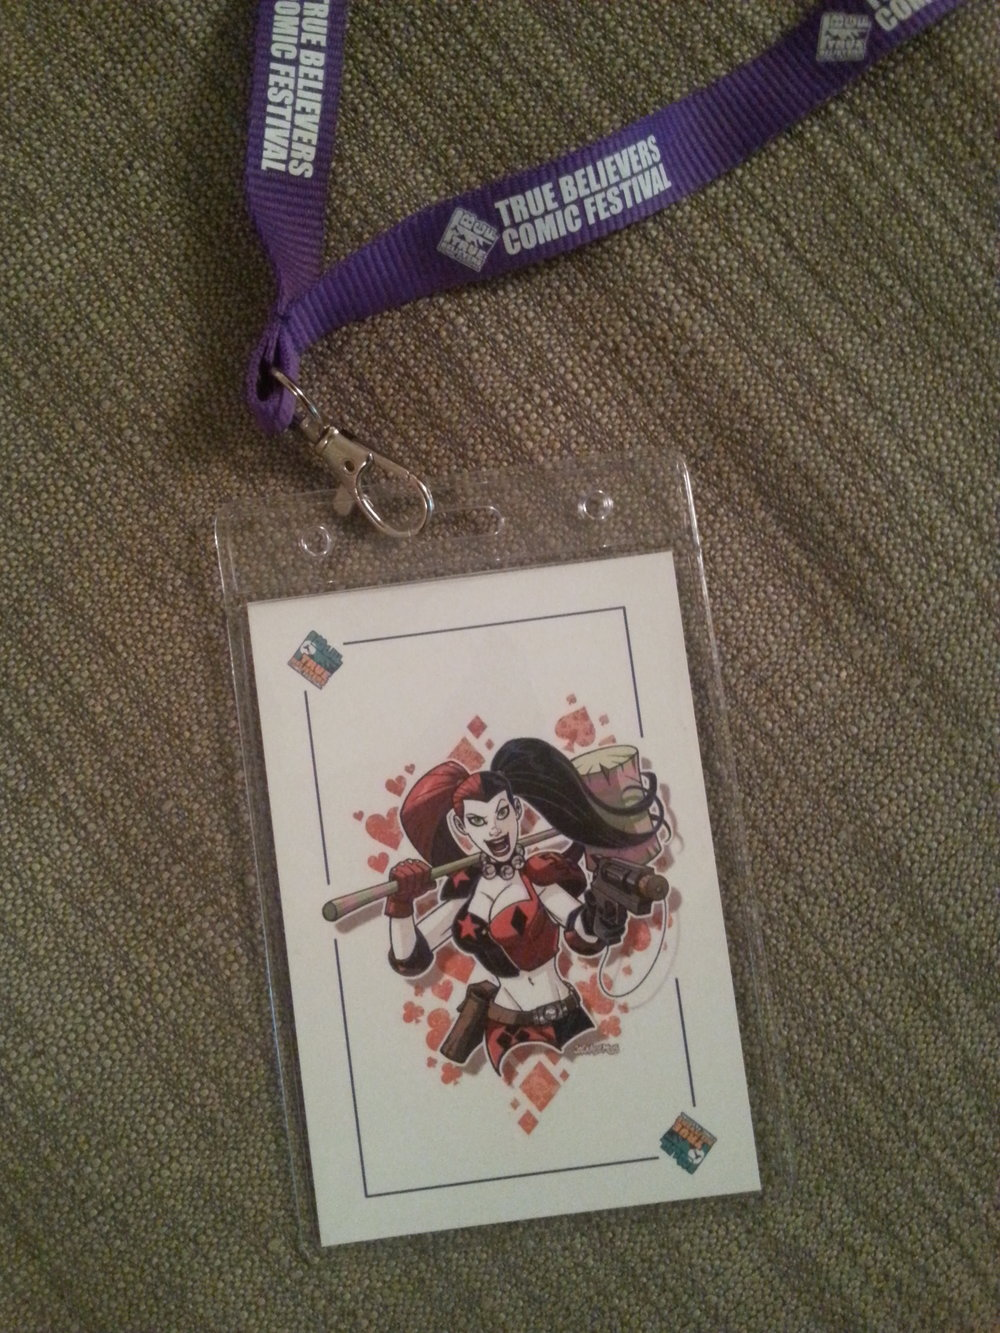 The 2016 True Believer Lanyard featuring harley quinn by Jack Lawrence